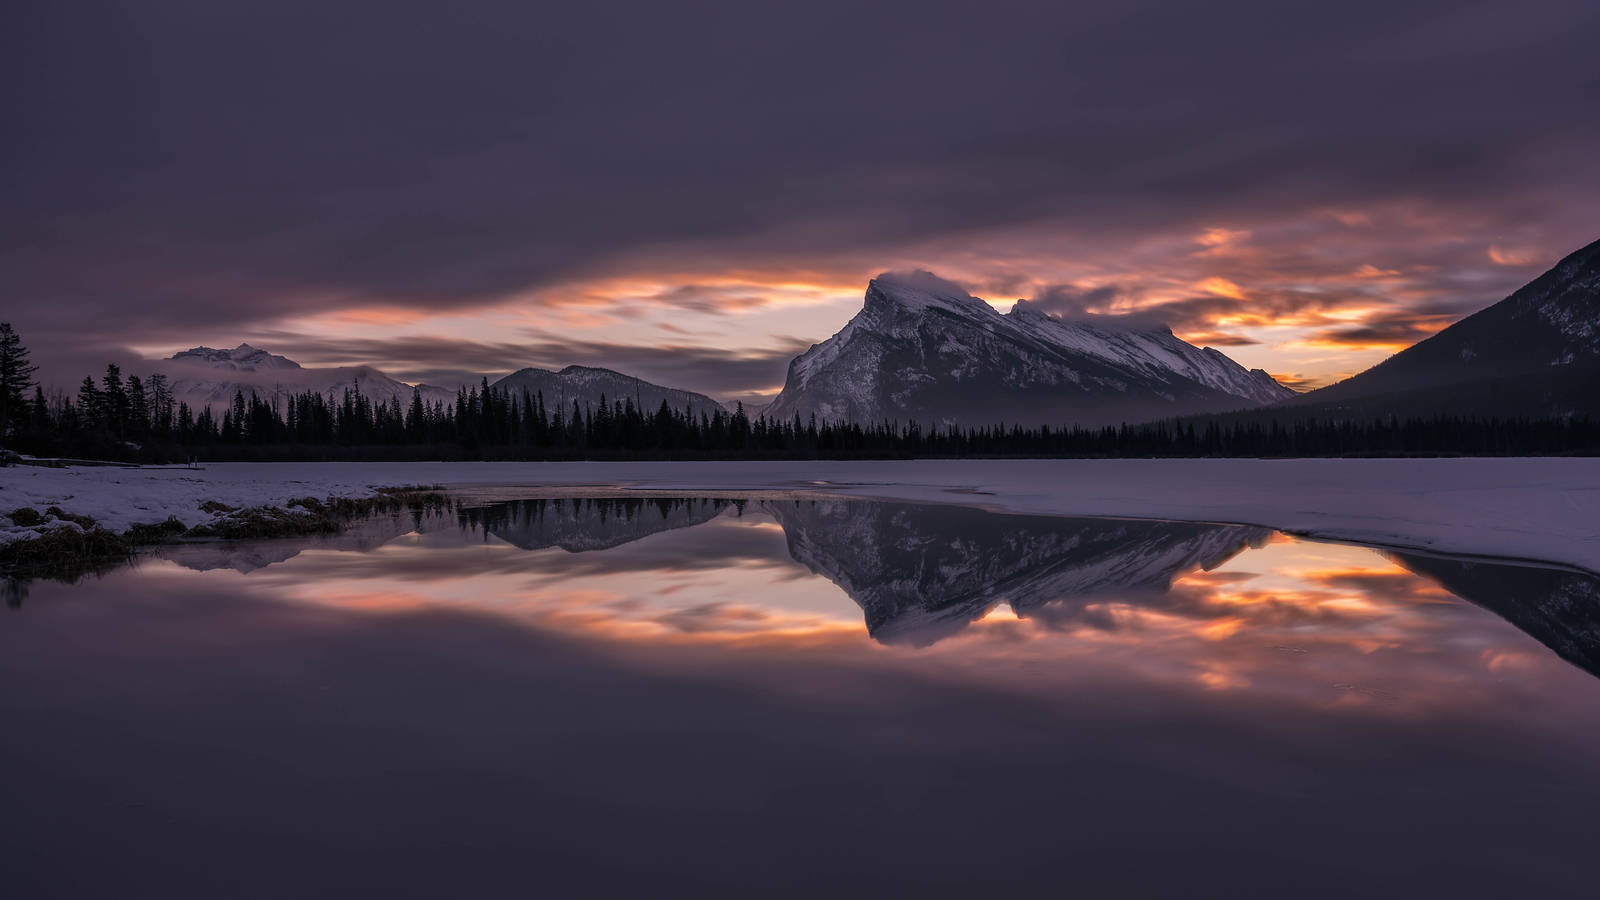 Sunrise are incredible in the Canadian Rockies